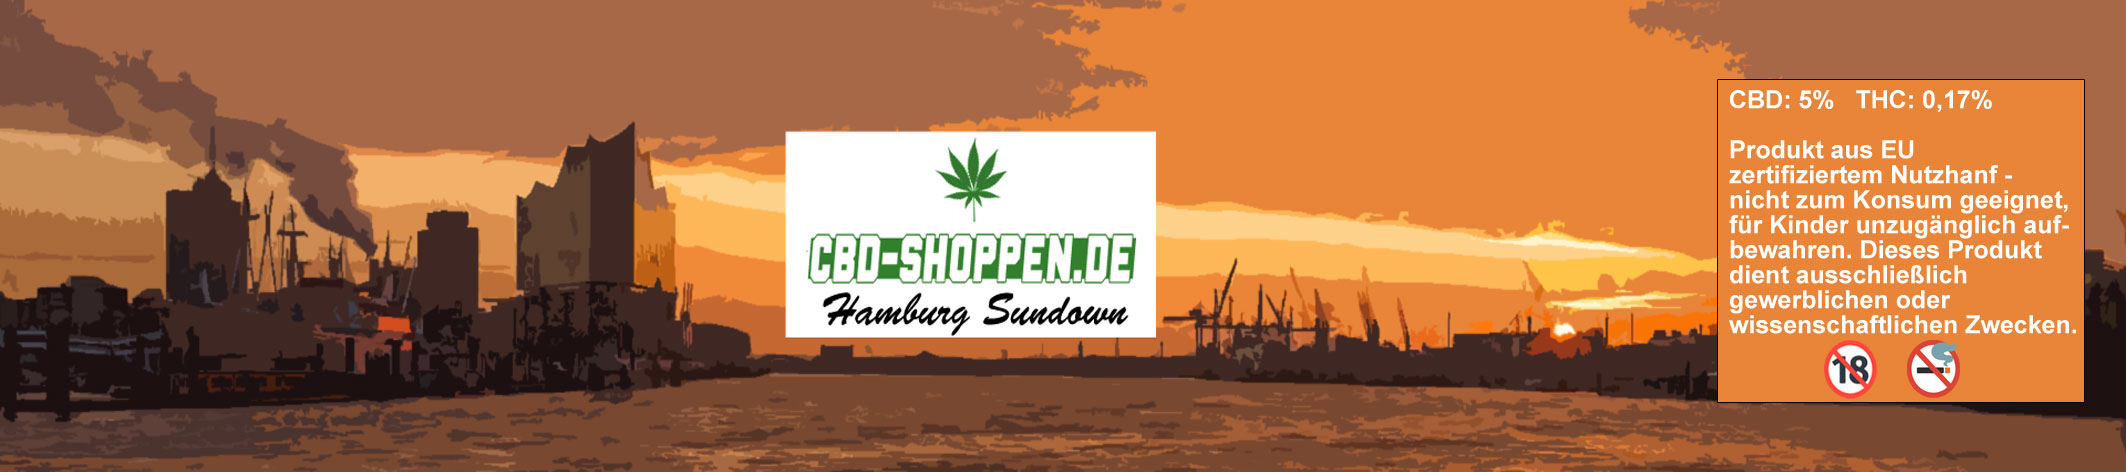 Hamburg Sundown CBD